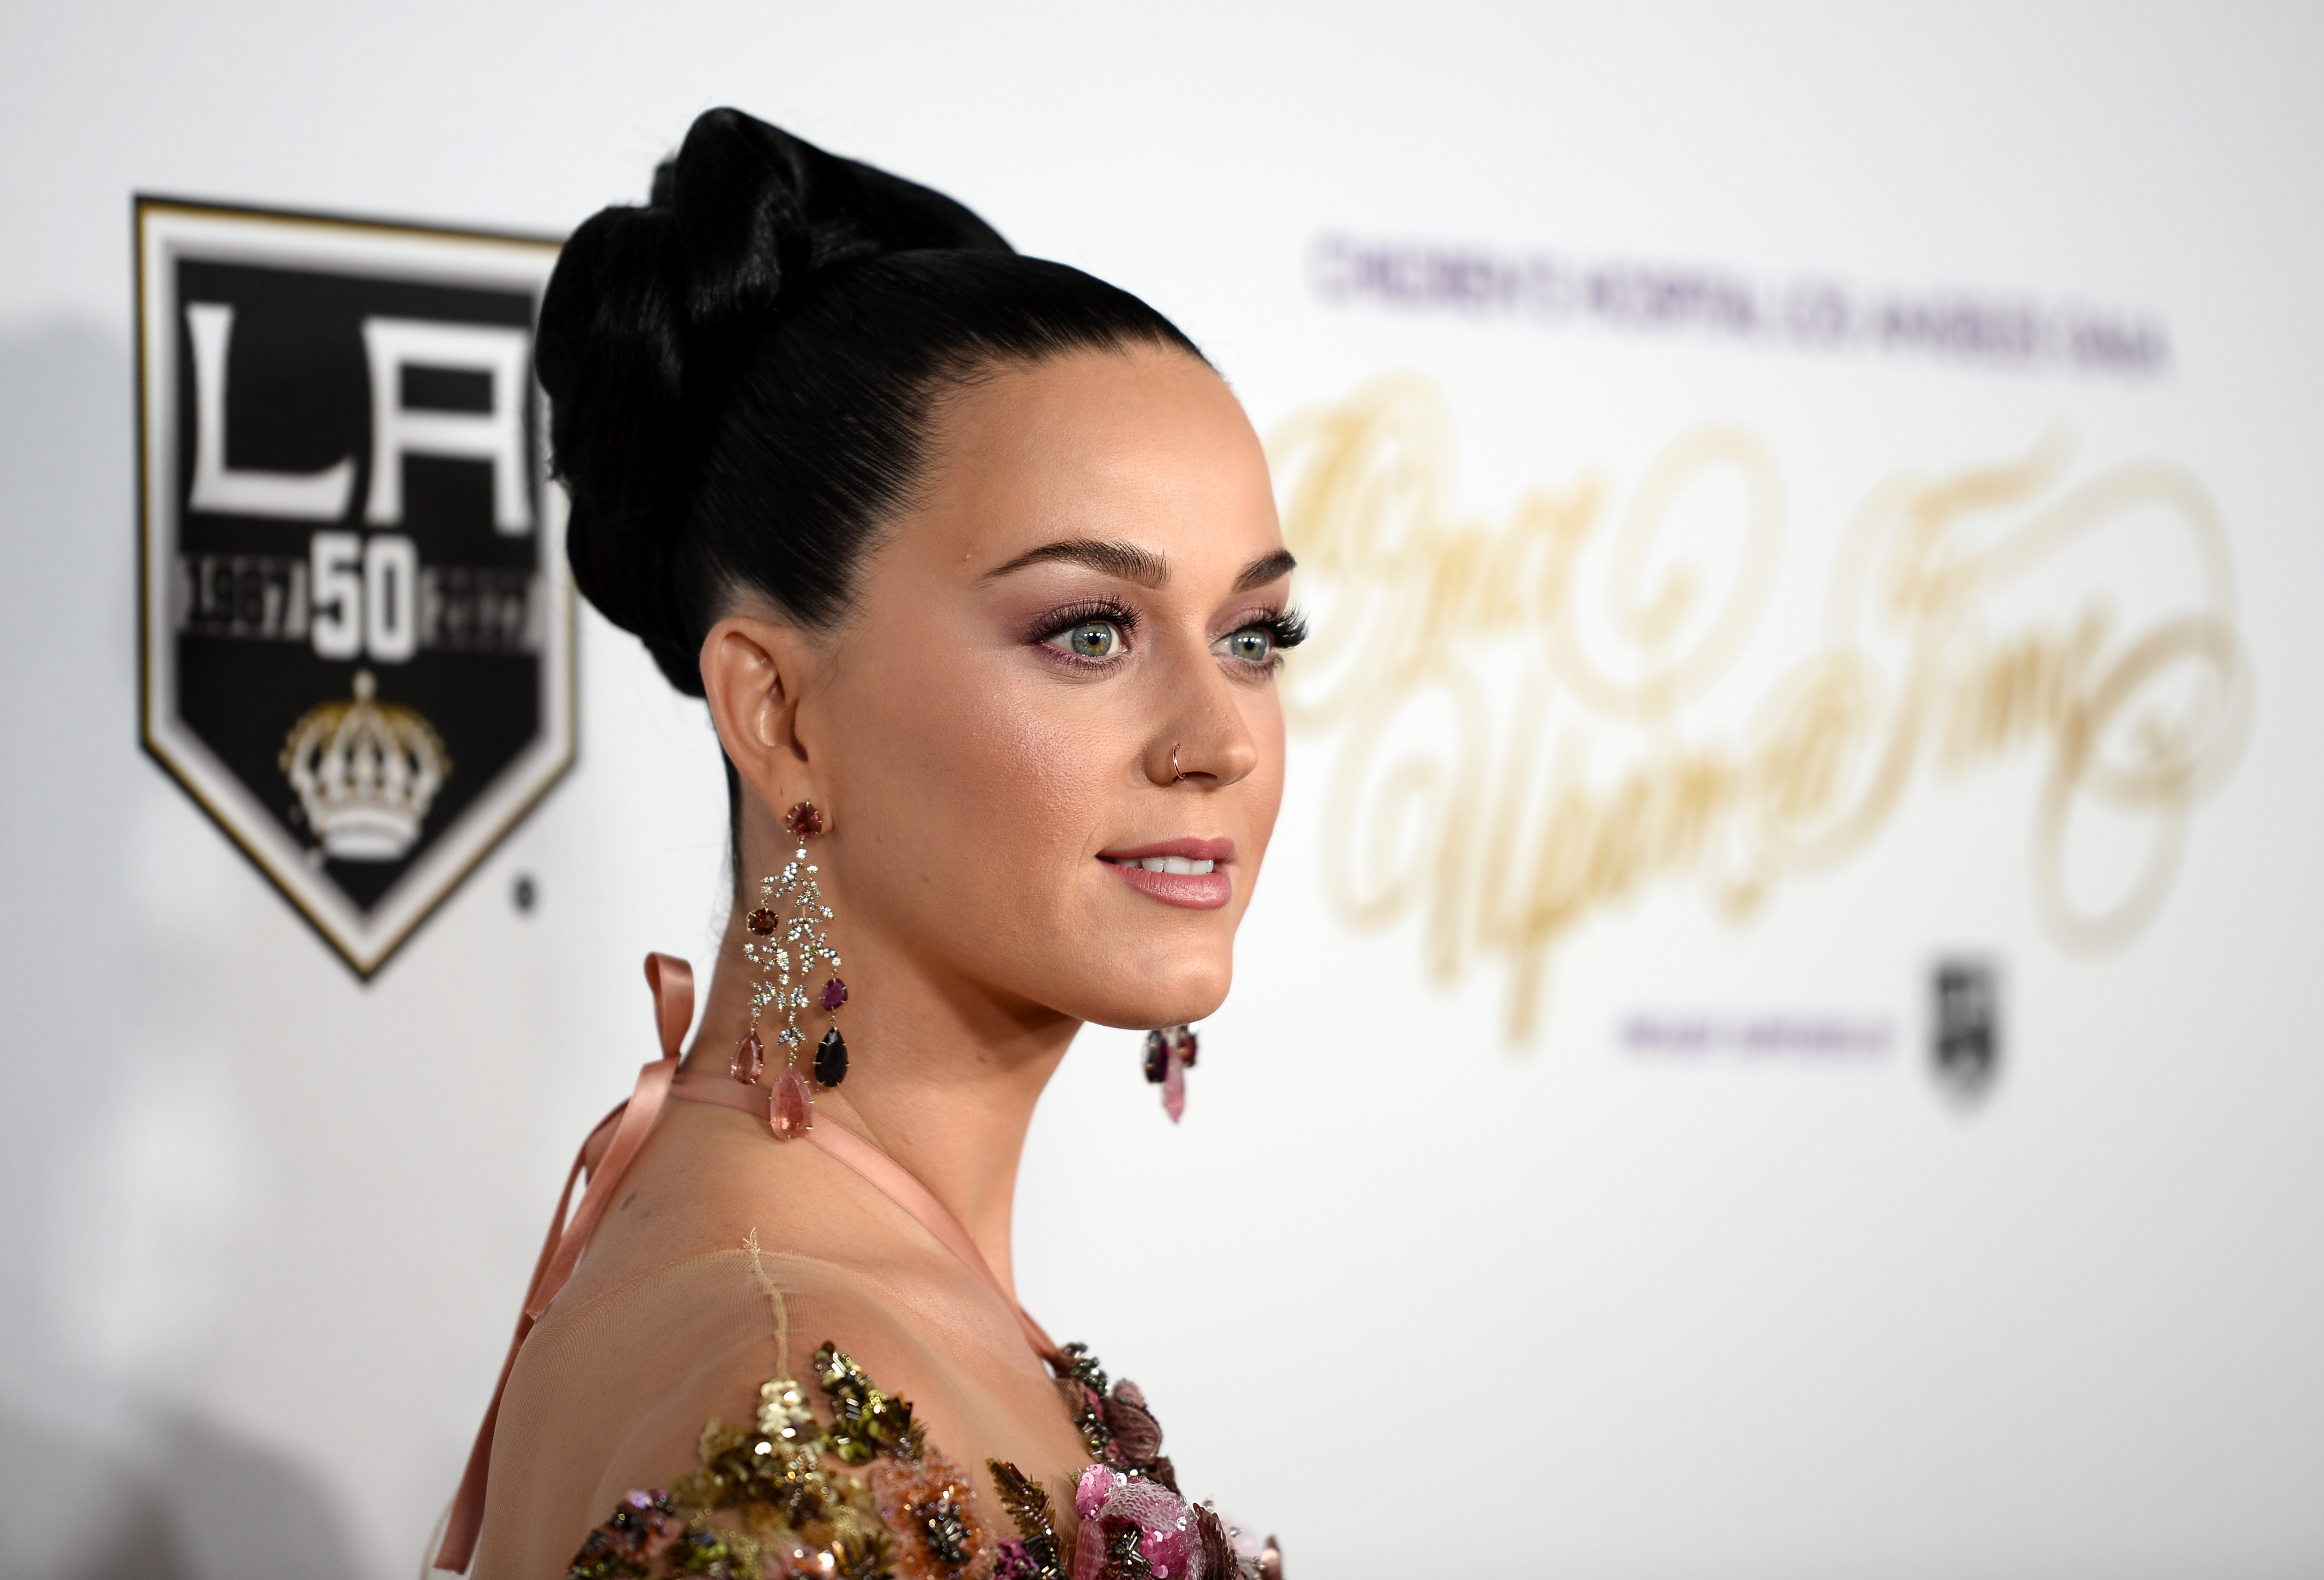 Here's proof that Katy Perry and Perrie Edwards are actually twins